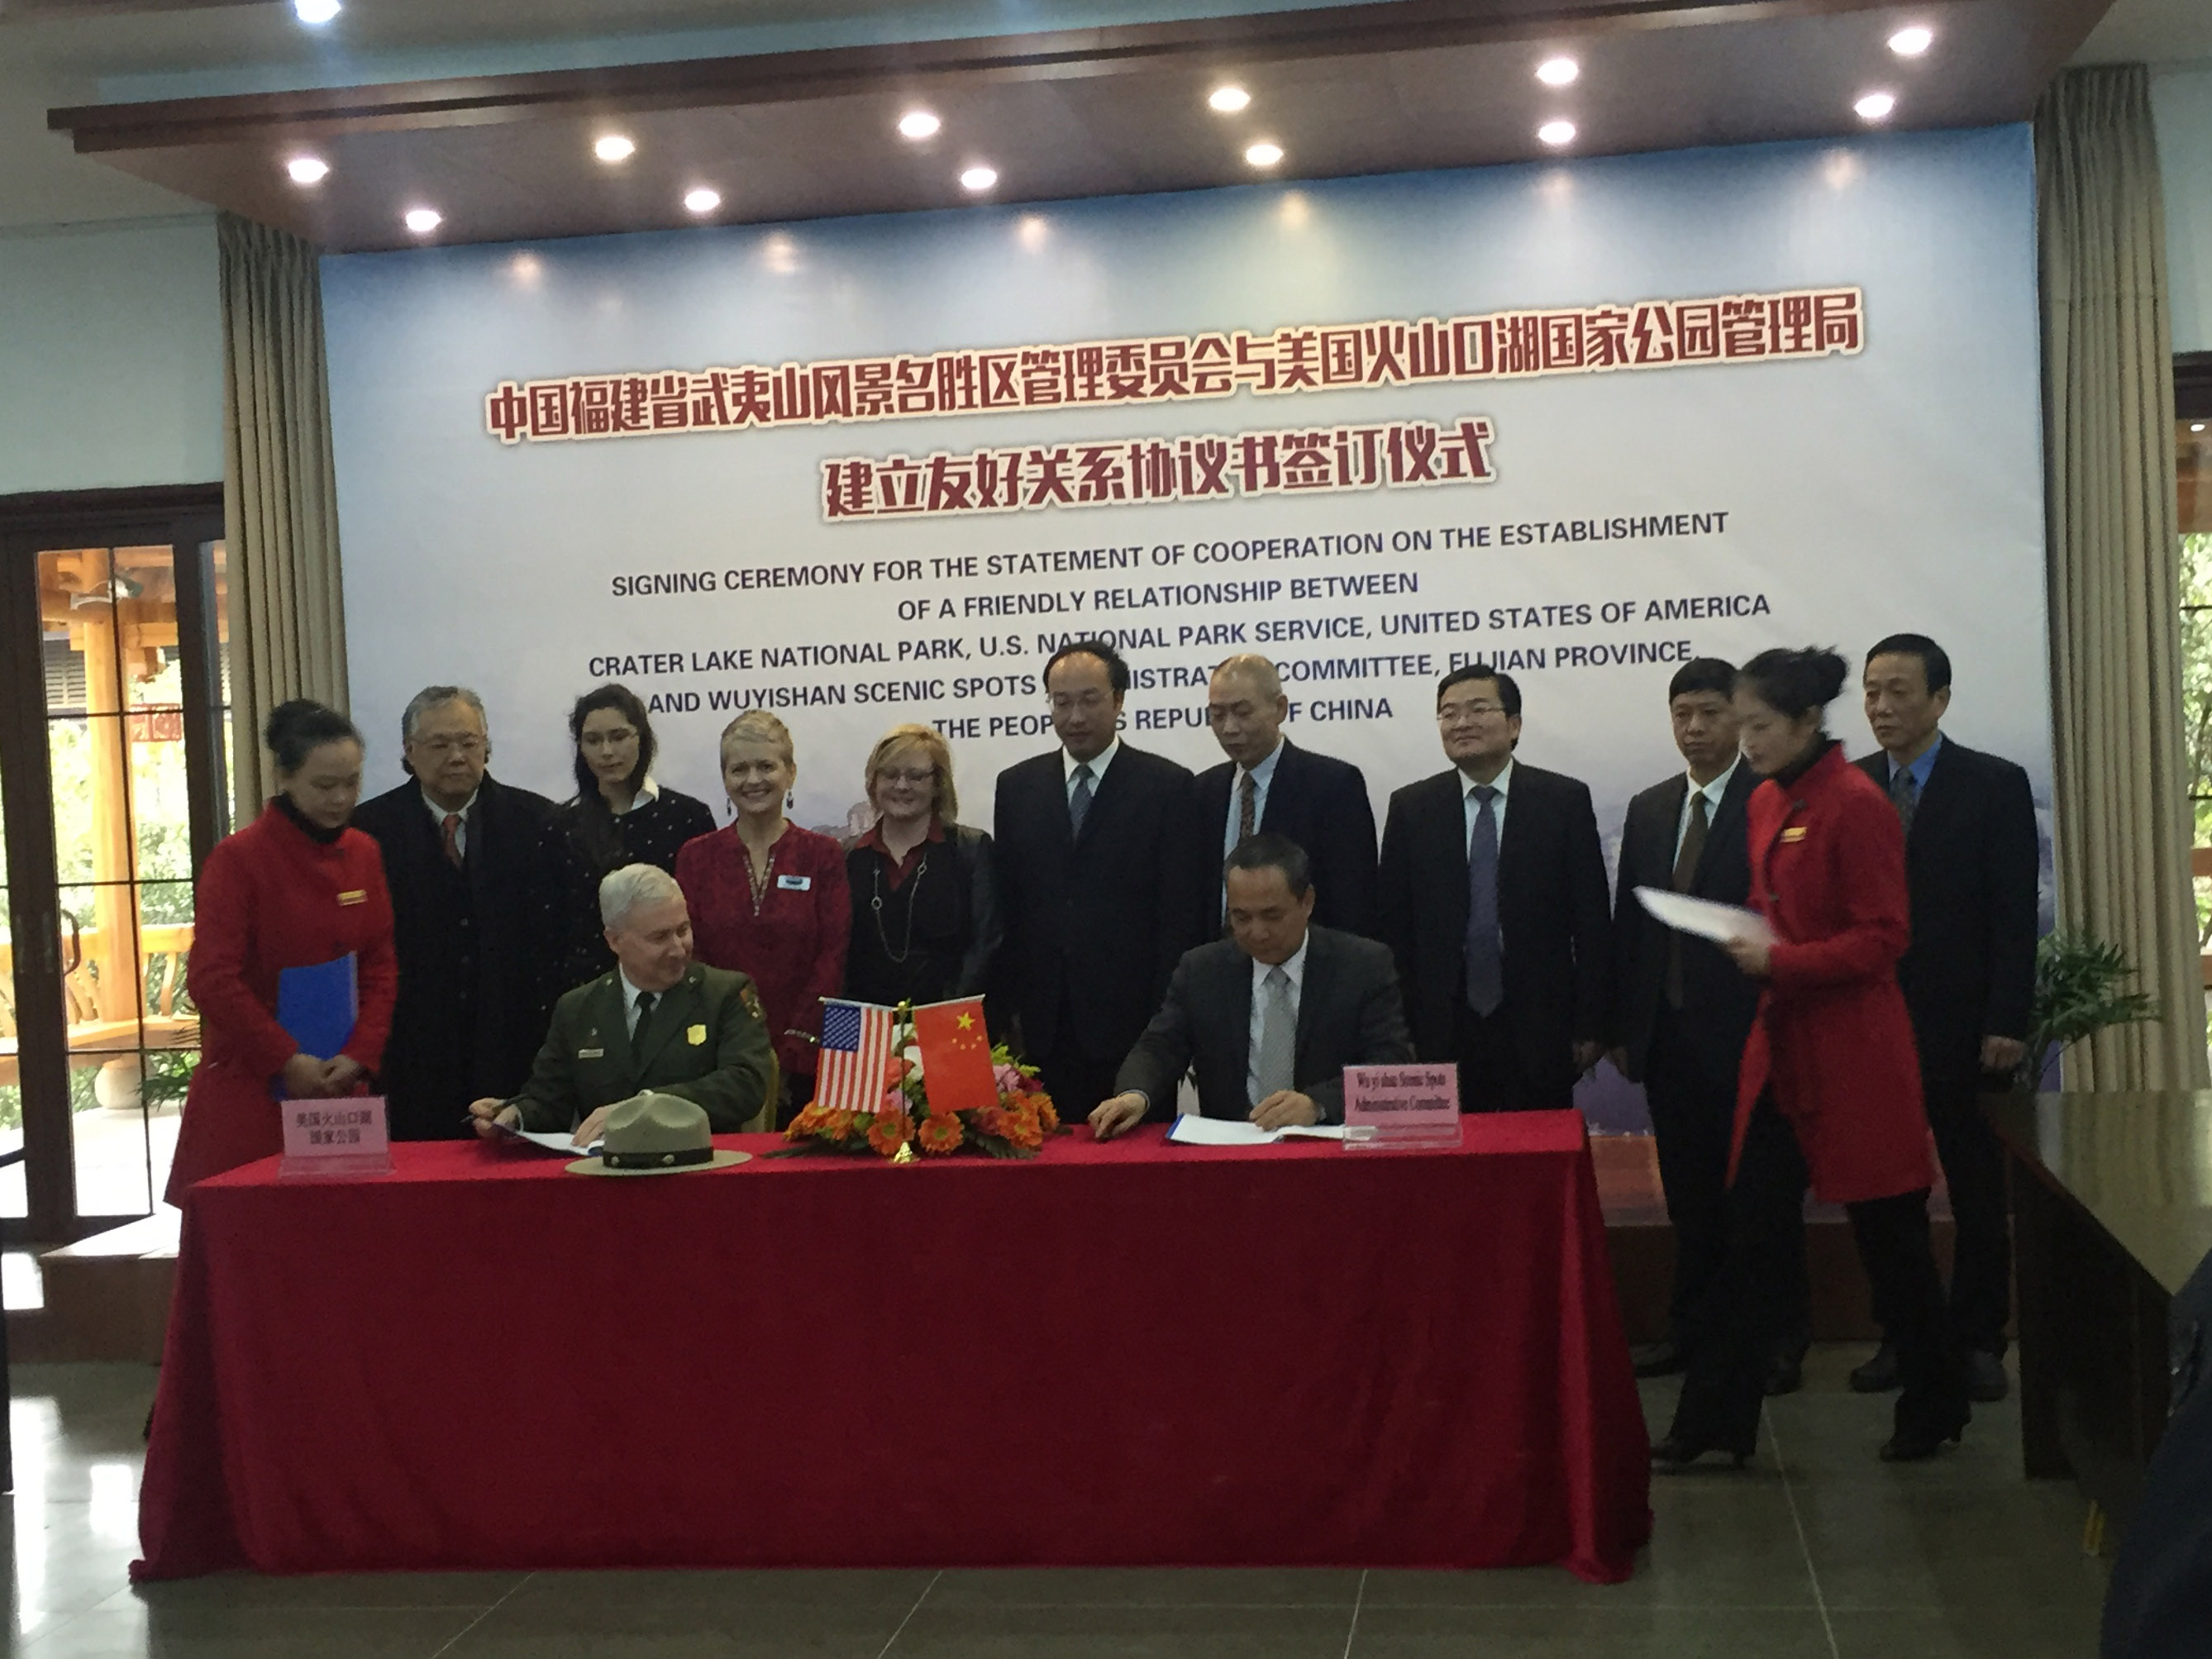 Crater Lake National Park Superintendent Craig Ackerman signs sister park agreement with Wuyishan National Scenic Area in China